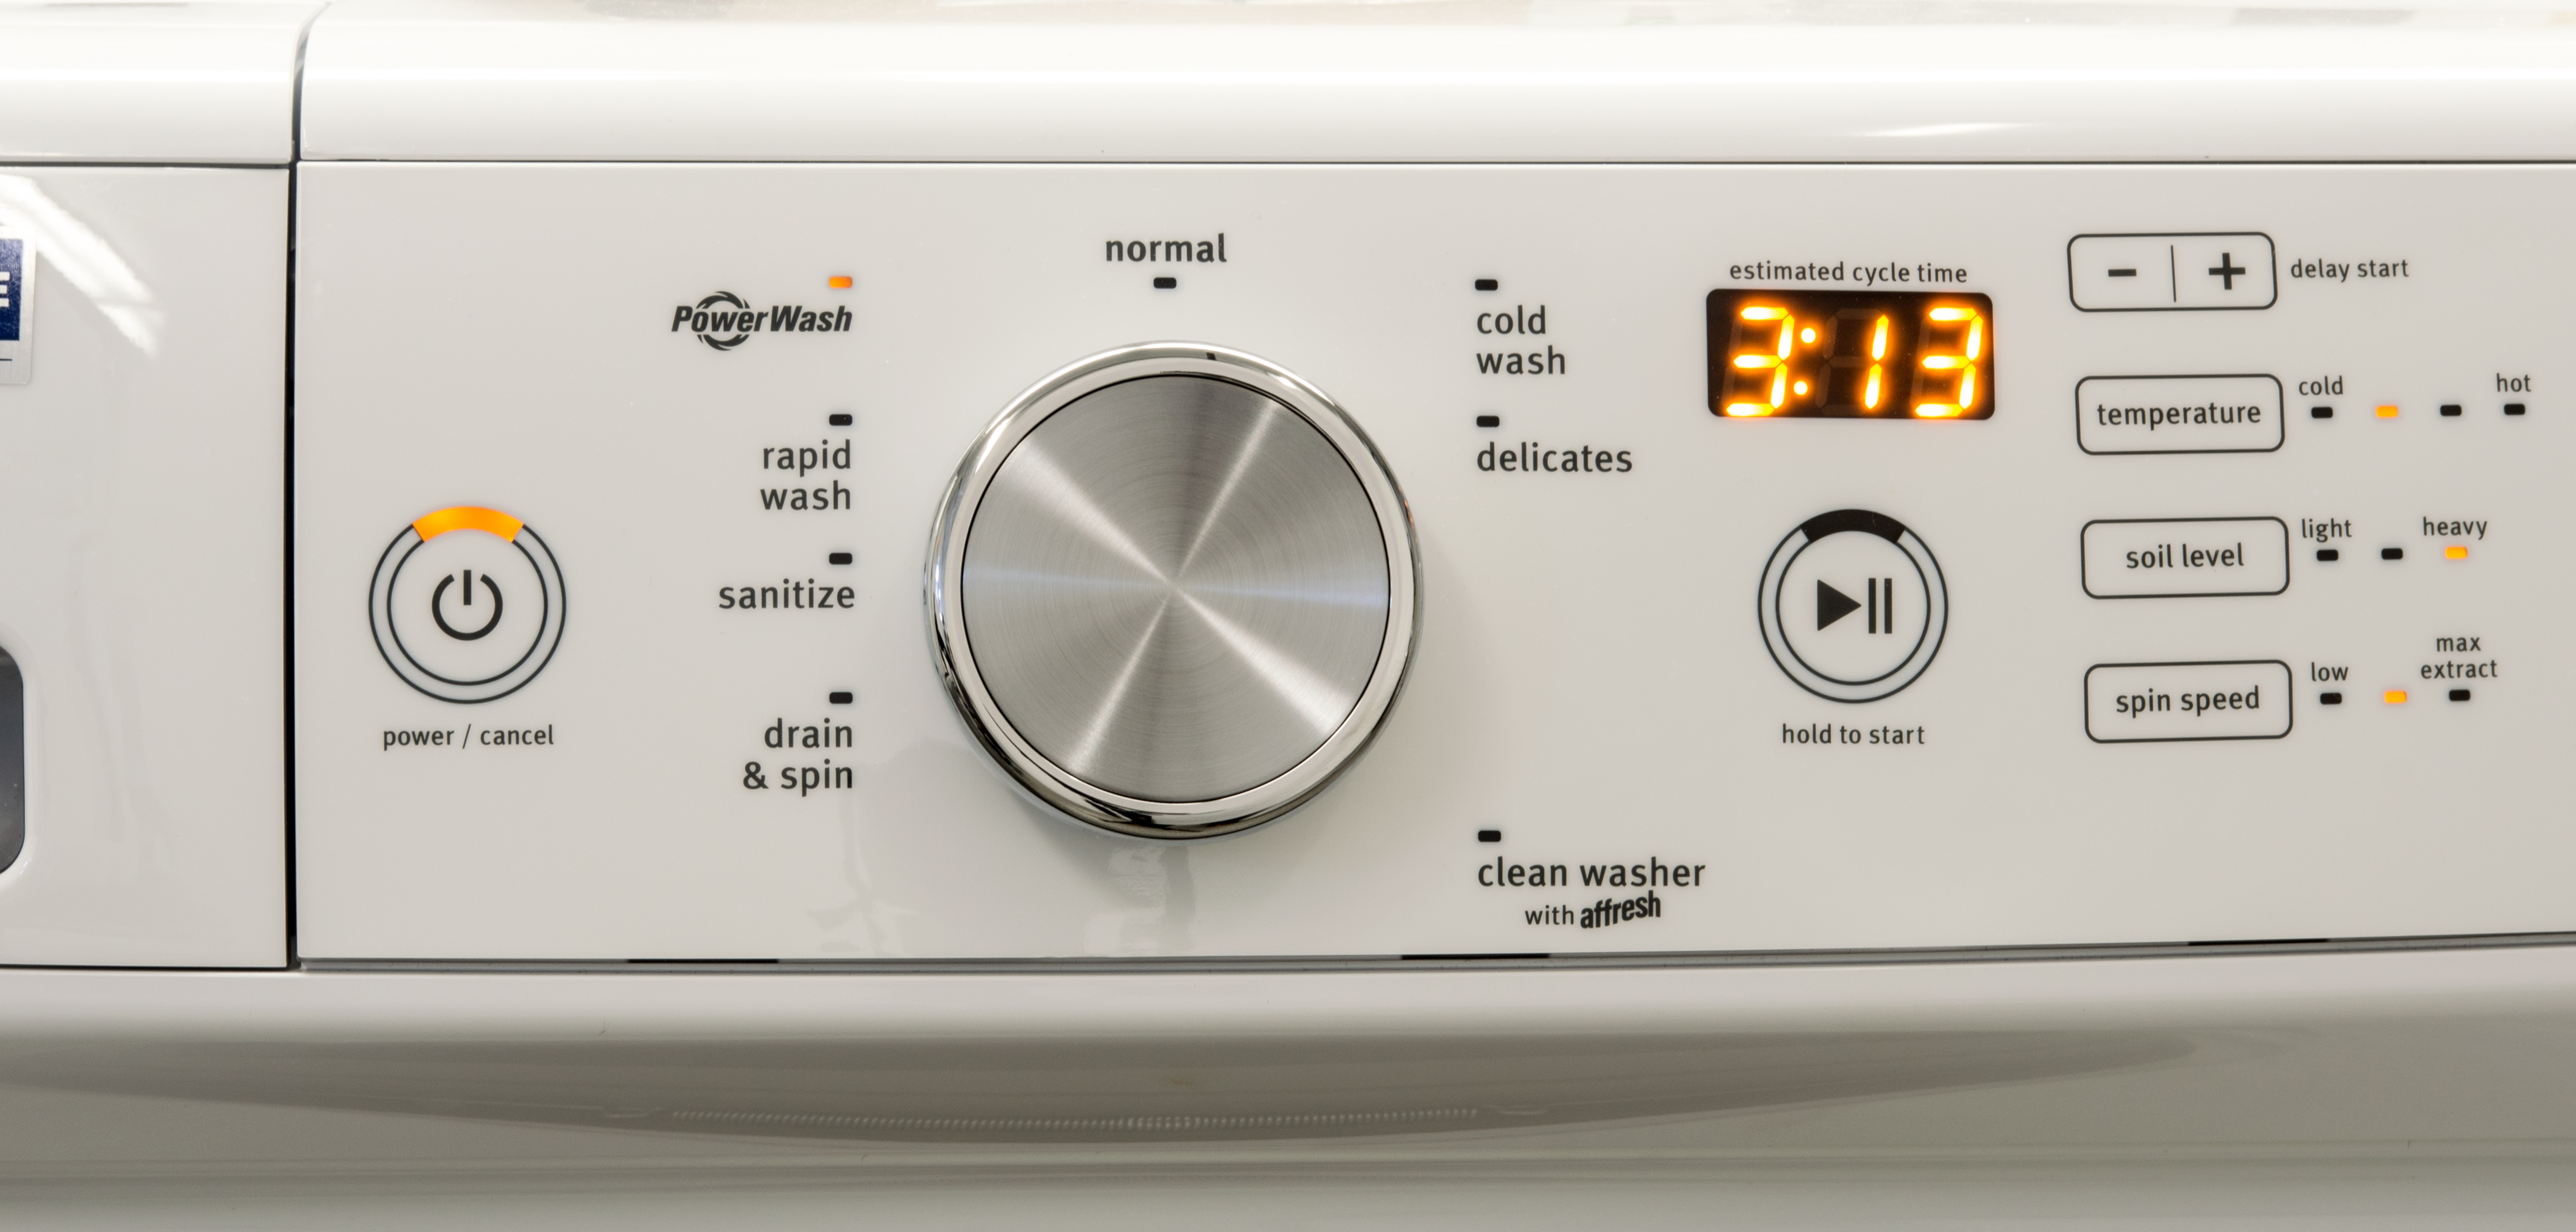 Get 200 Off This Solid Maytag Washing Machine Reviewed